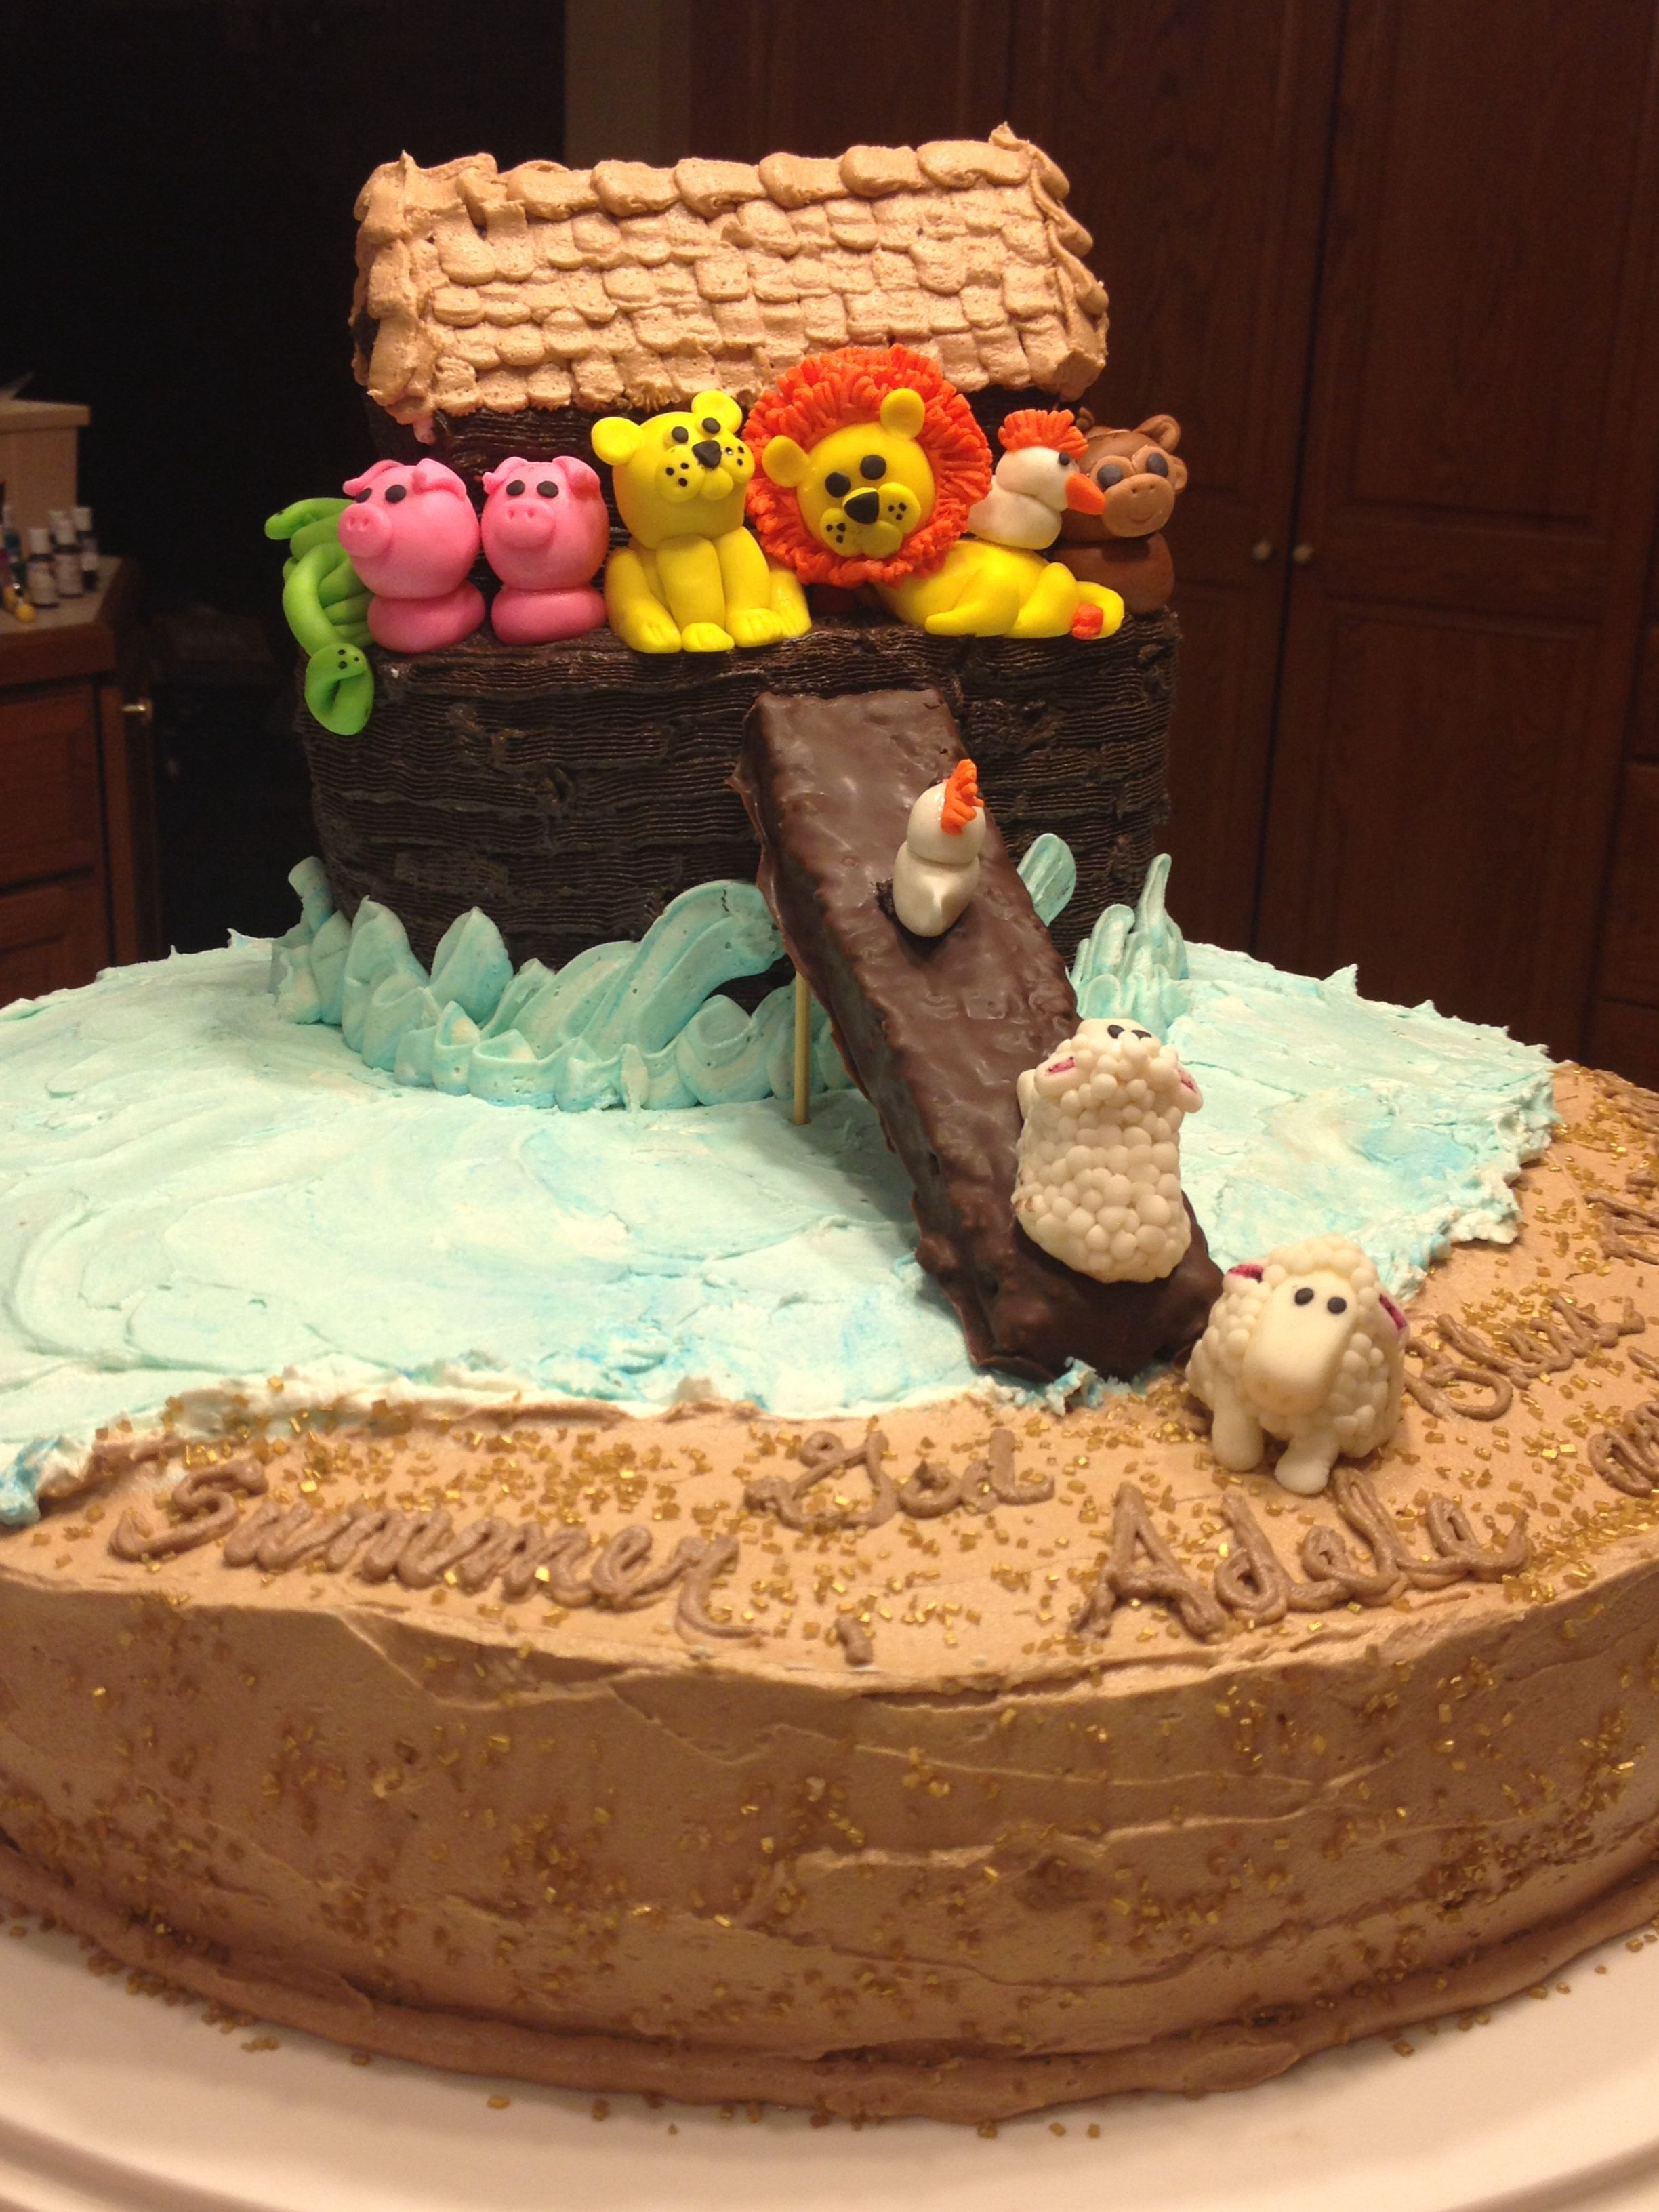 Ark Kuchen Noah S Ark Cake Fondant Animals Sitting Atop A Chocolate Layer